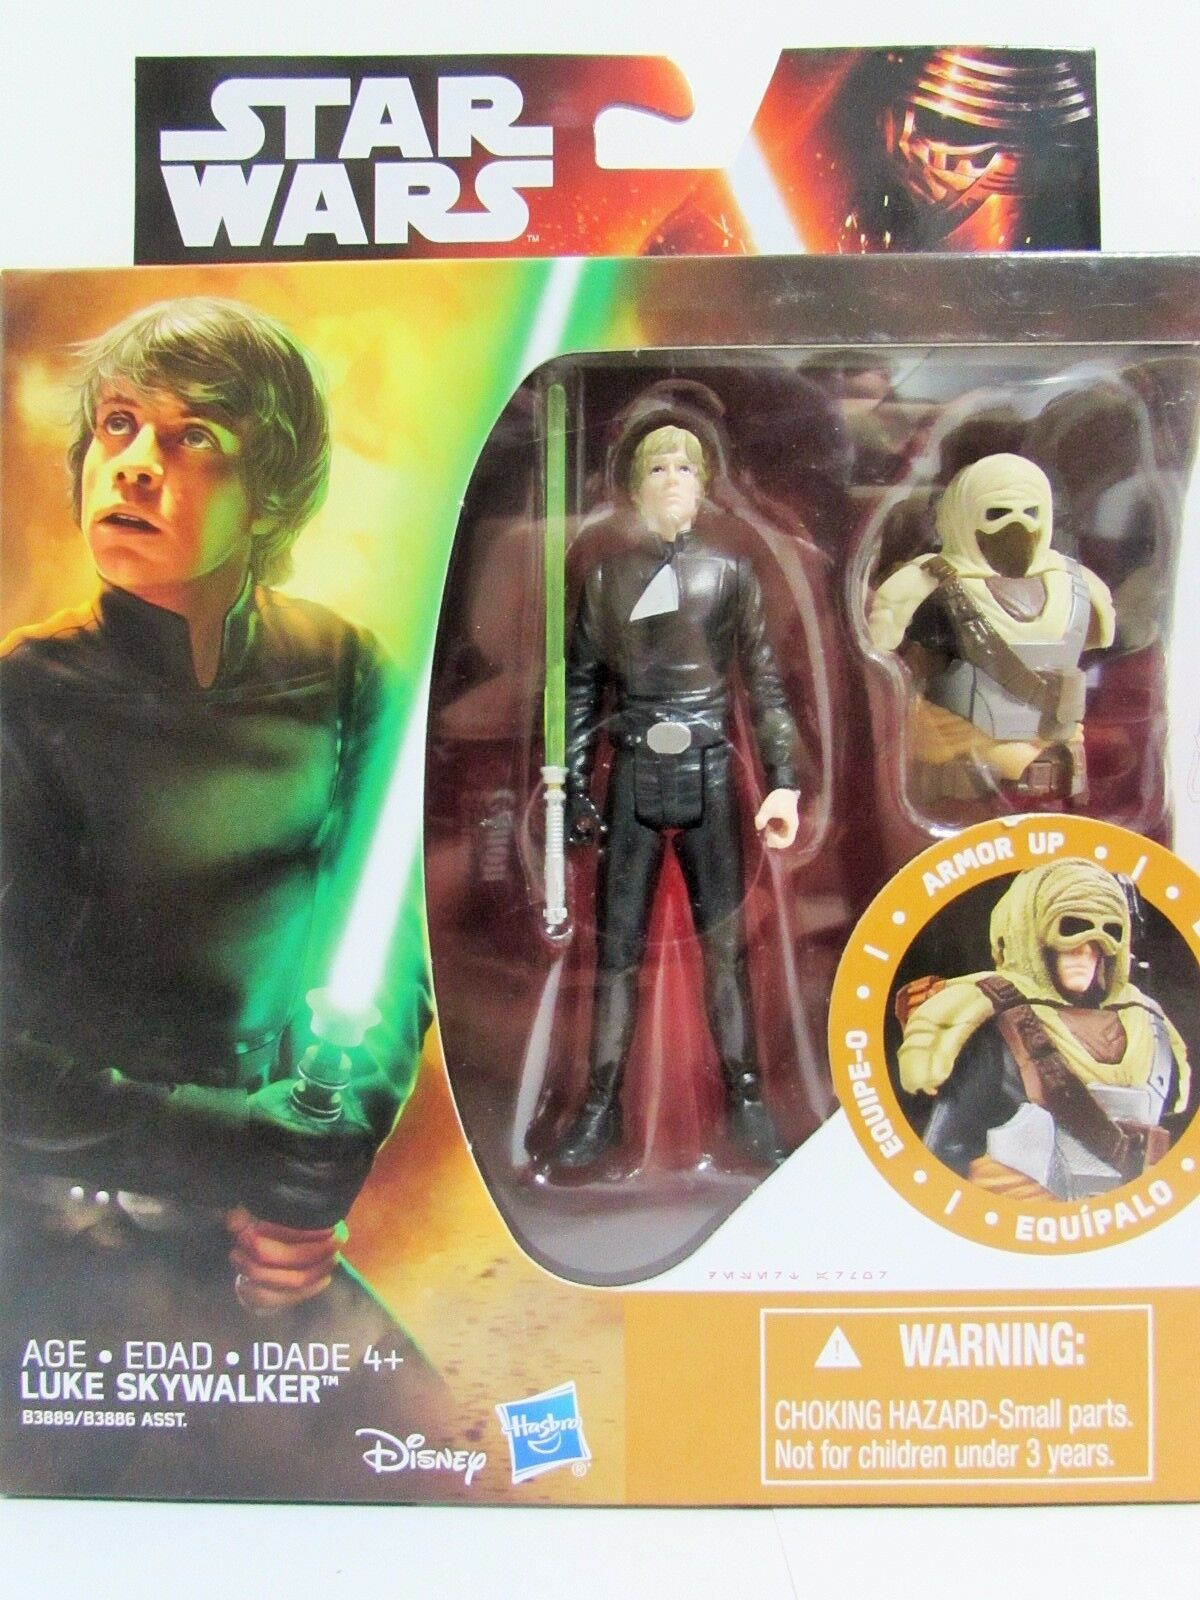 Star Star Star Wars Armor Up Hasbro Completed Lot of 10 The Force Awakens Brand Nuovo Figure cfba76